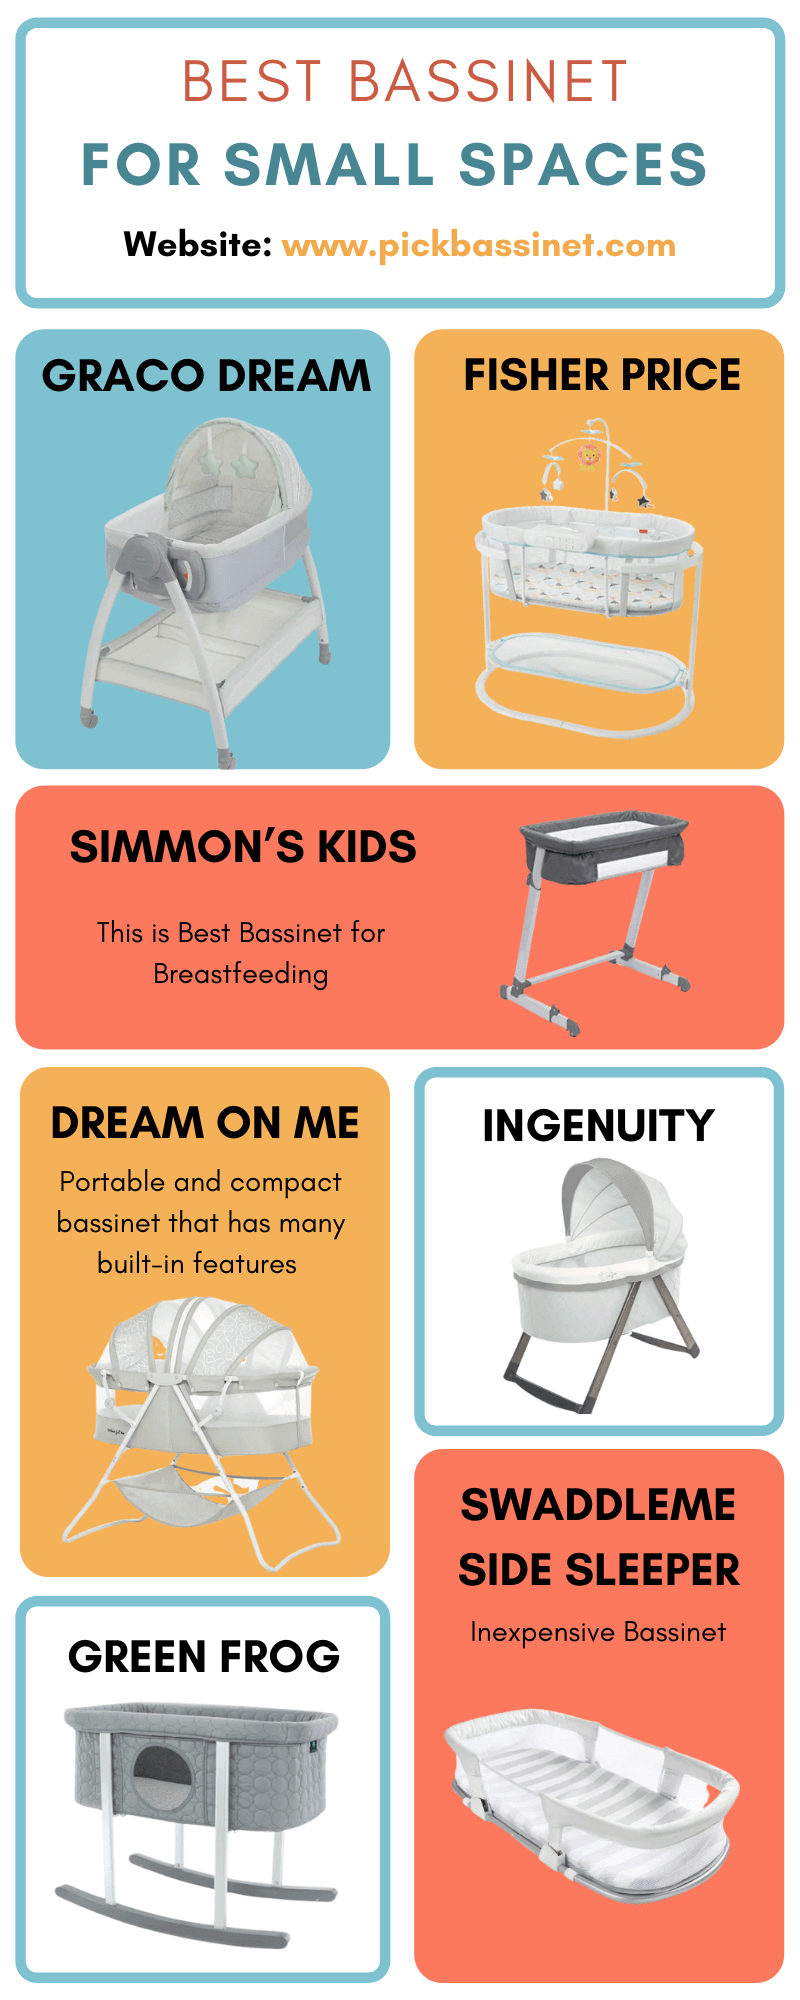 Best Bassinet for Small Spaces Infographic